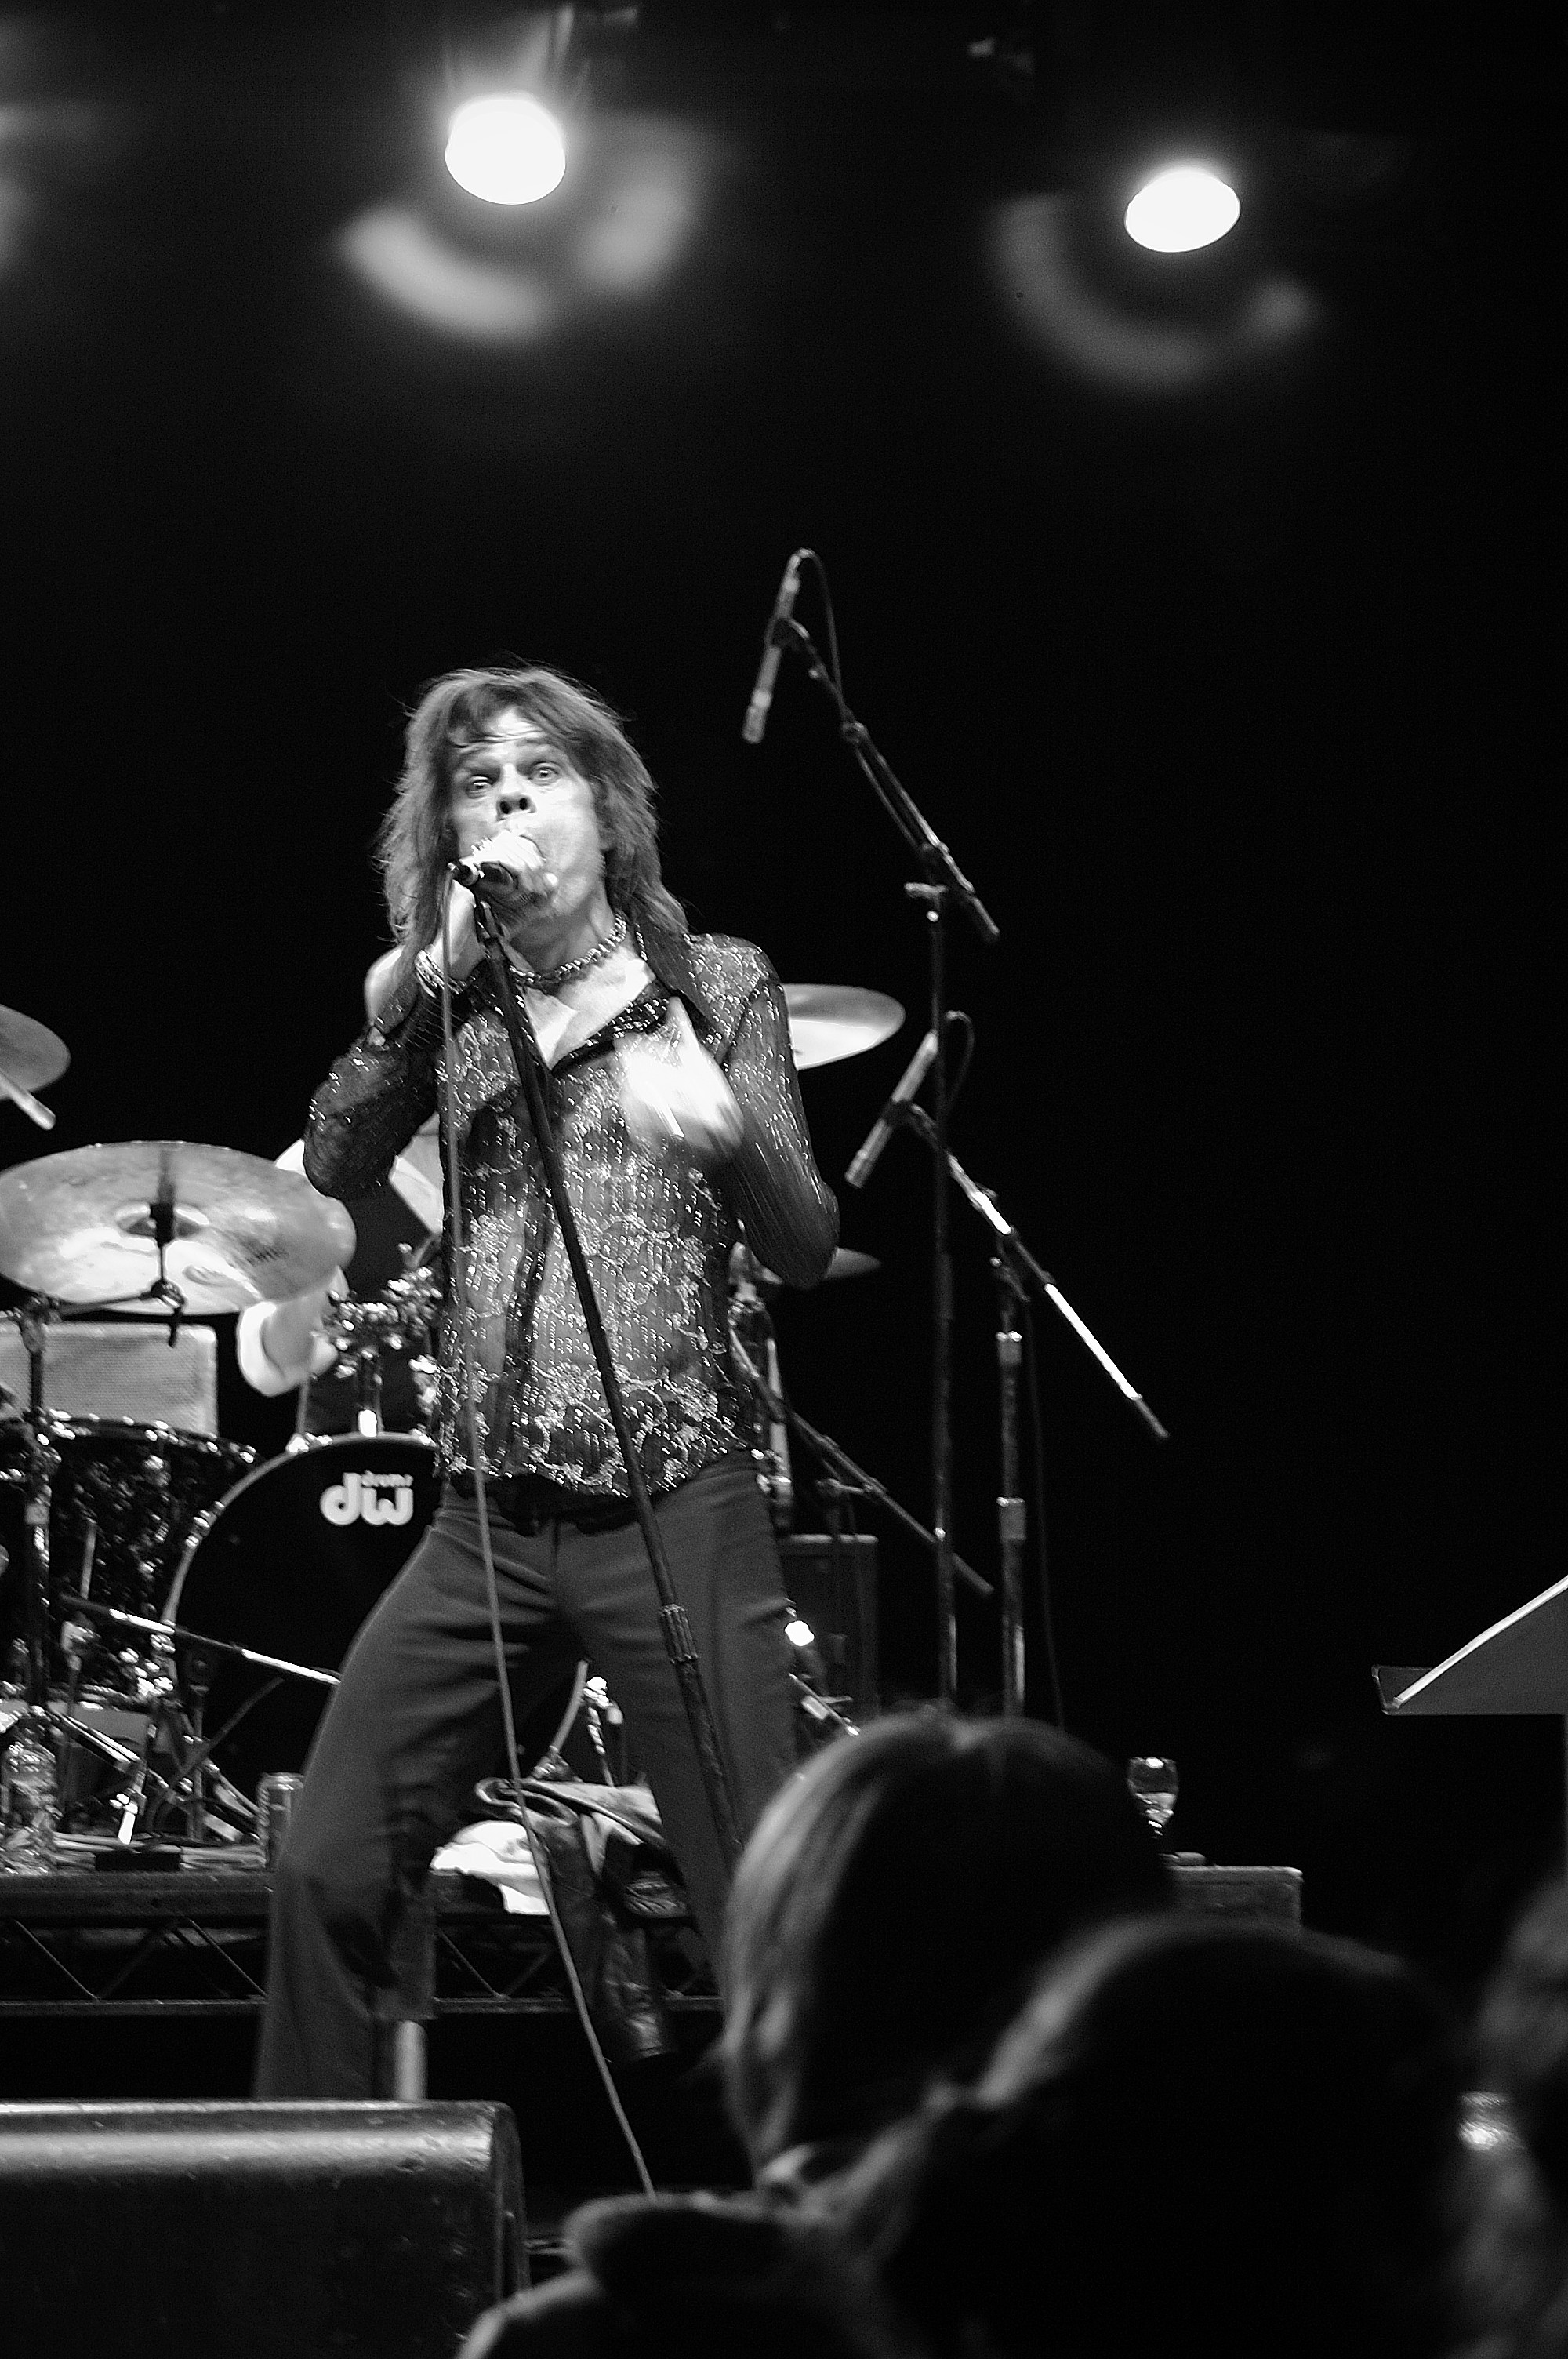 File:New York Dolls - David Johansen (453845412).jpg ...